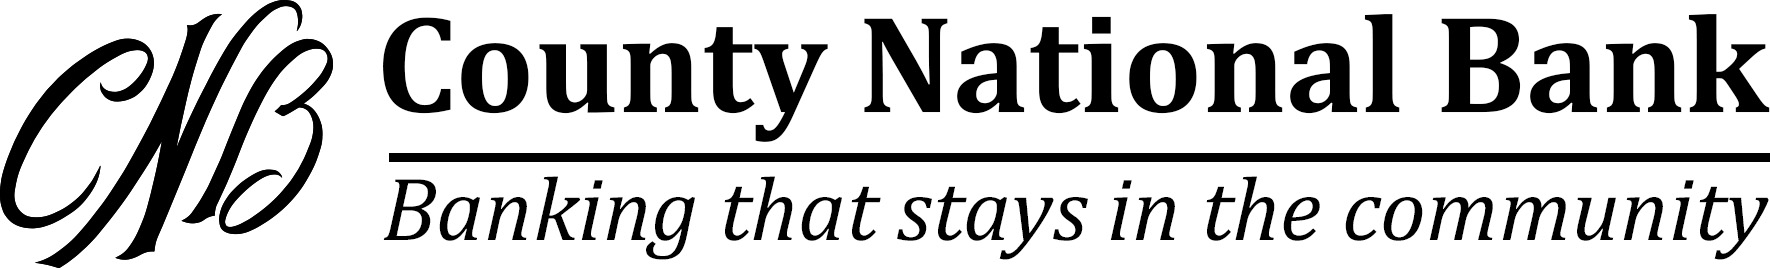 County National Bank - sponsor of the Great Lakes Woodworking Festival.jpg